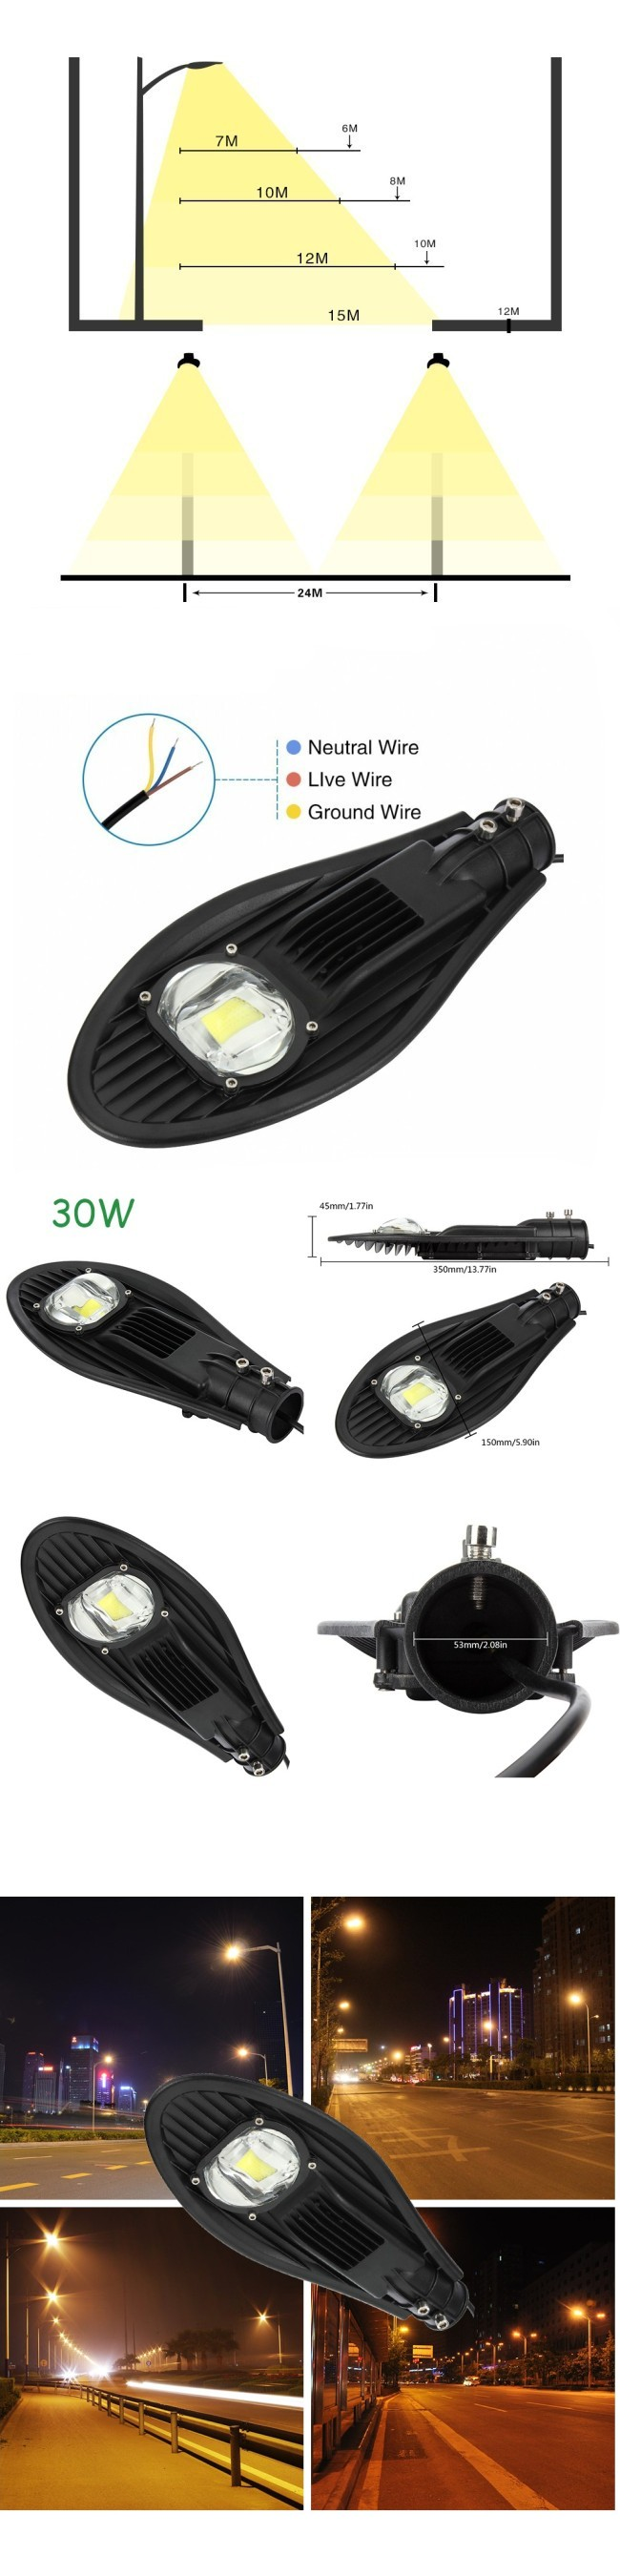 Outdoor Solar LED Lamp LED Street Light Solar LED Light 20W Garden LED Solar Light